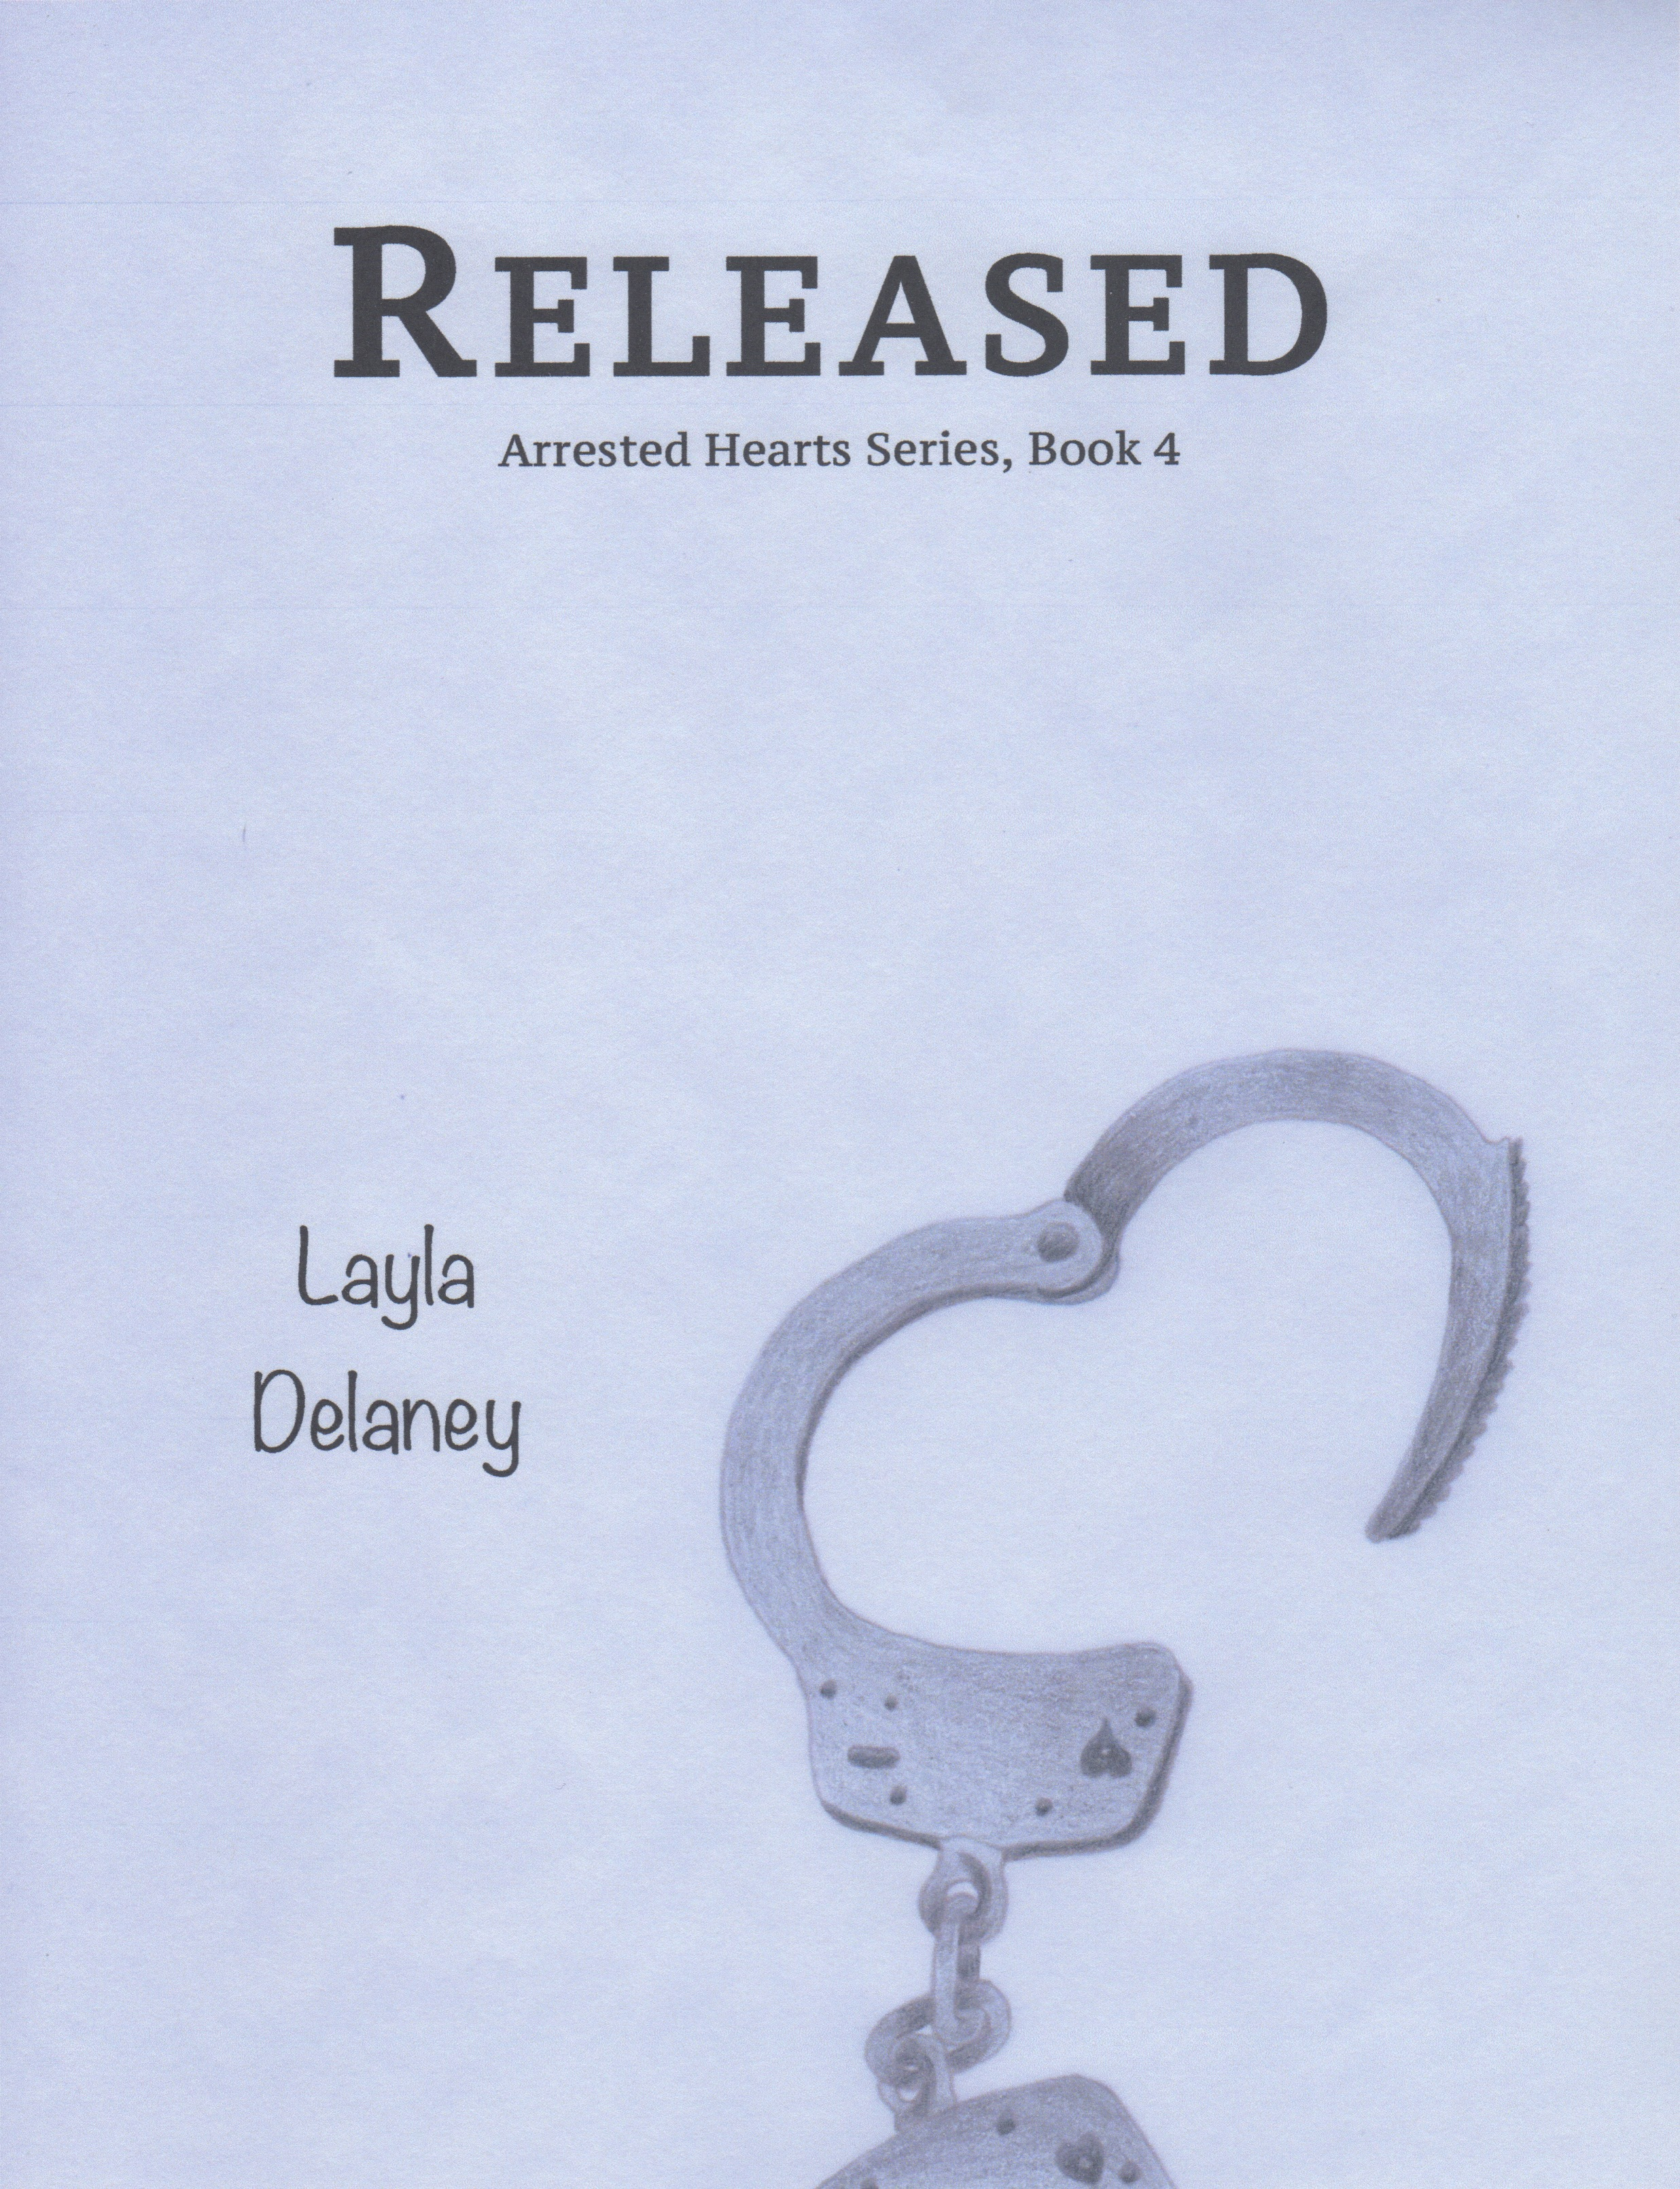 Released - Arrested Hearts Series, Book 4  by  Layla  Delaney